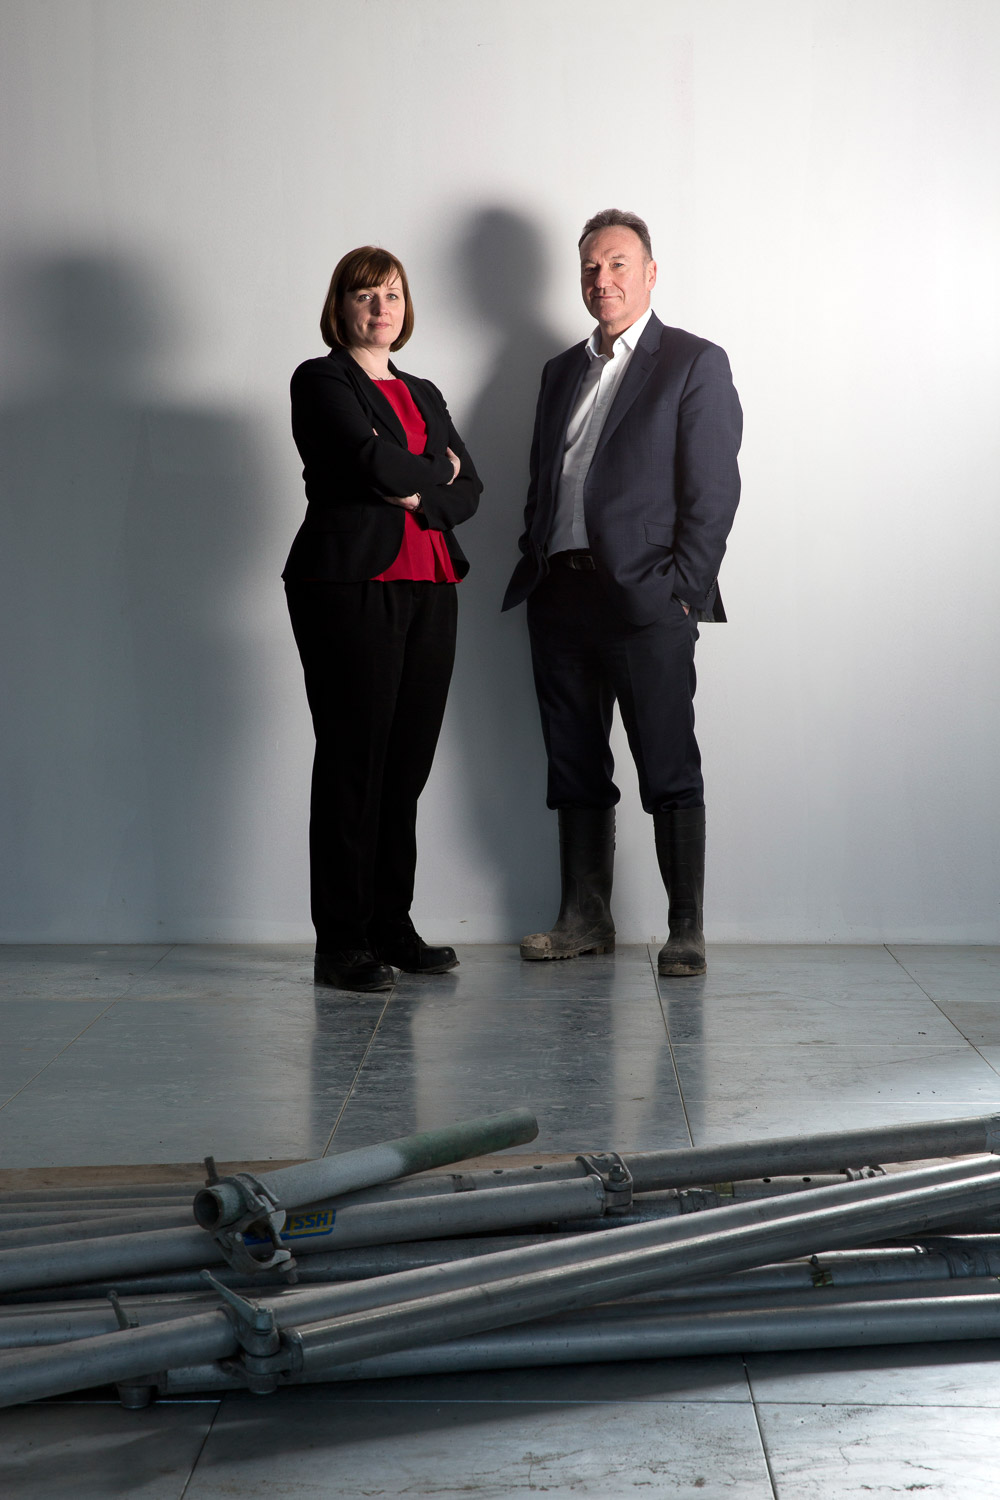 FIONA WILLIAMSON & HUGH CURRIE   DSSR BREEAM Assessor & Building Services Engineer